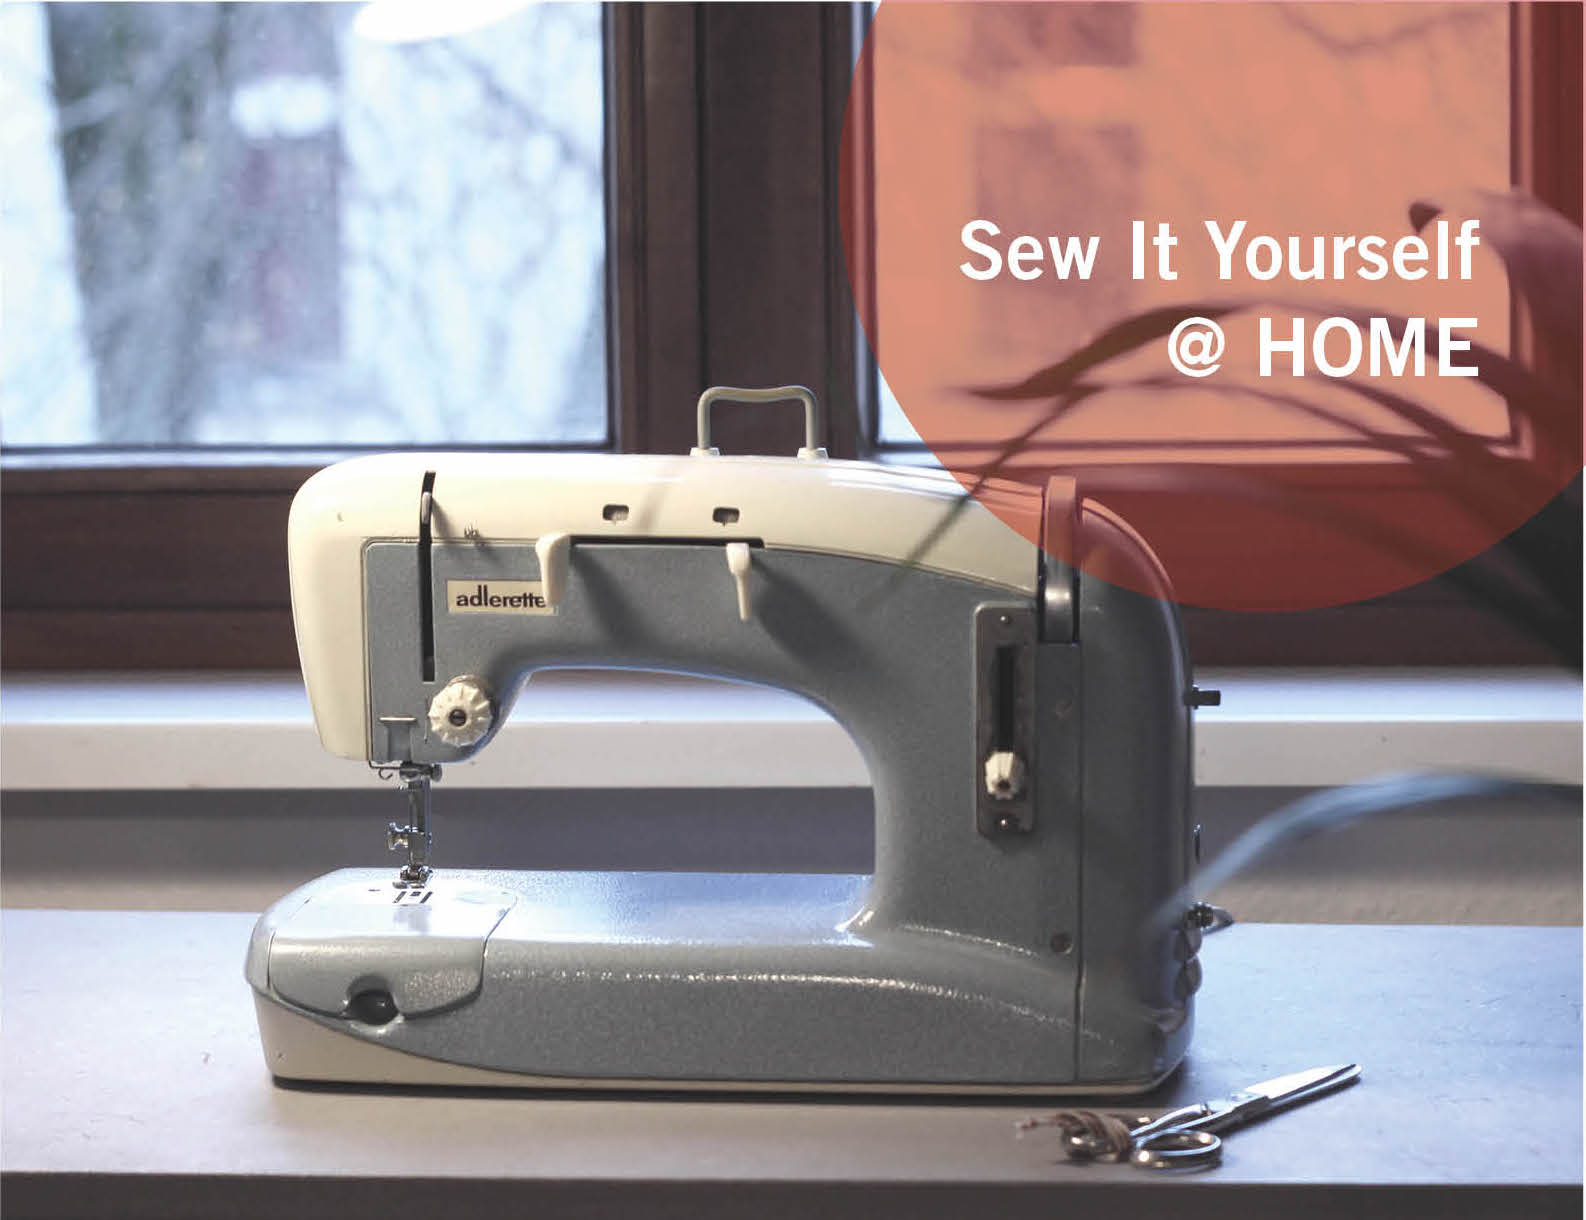 Sew It Yourself @ Home